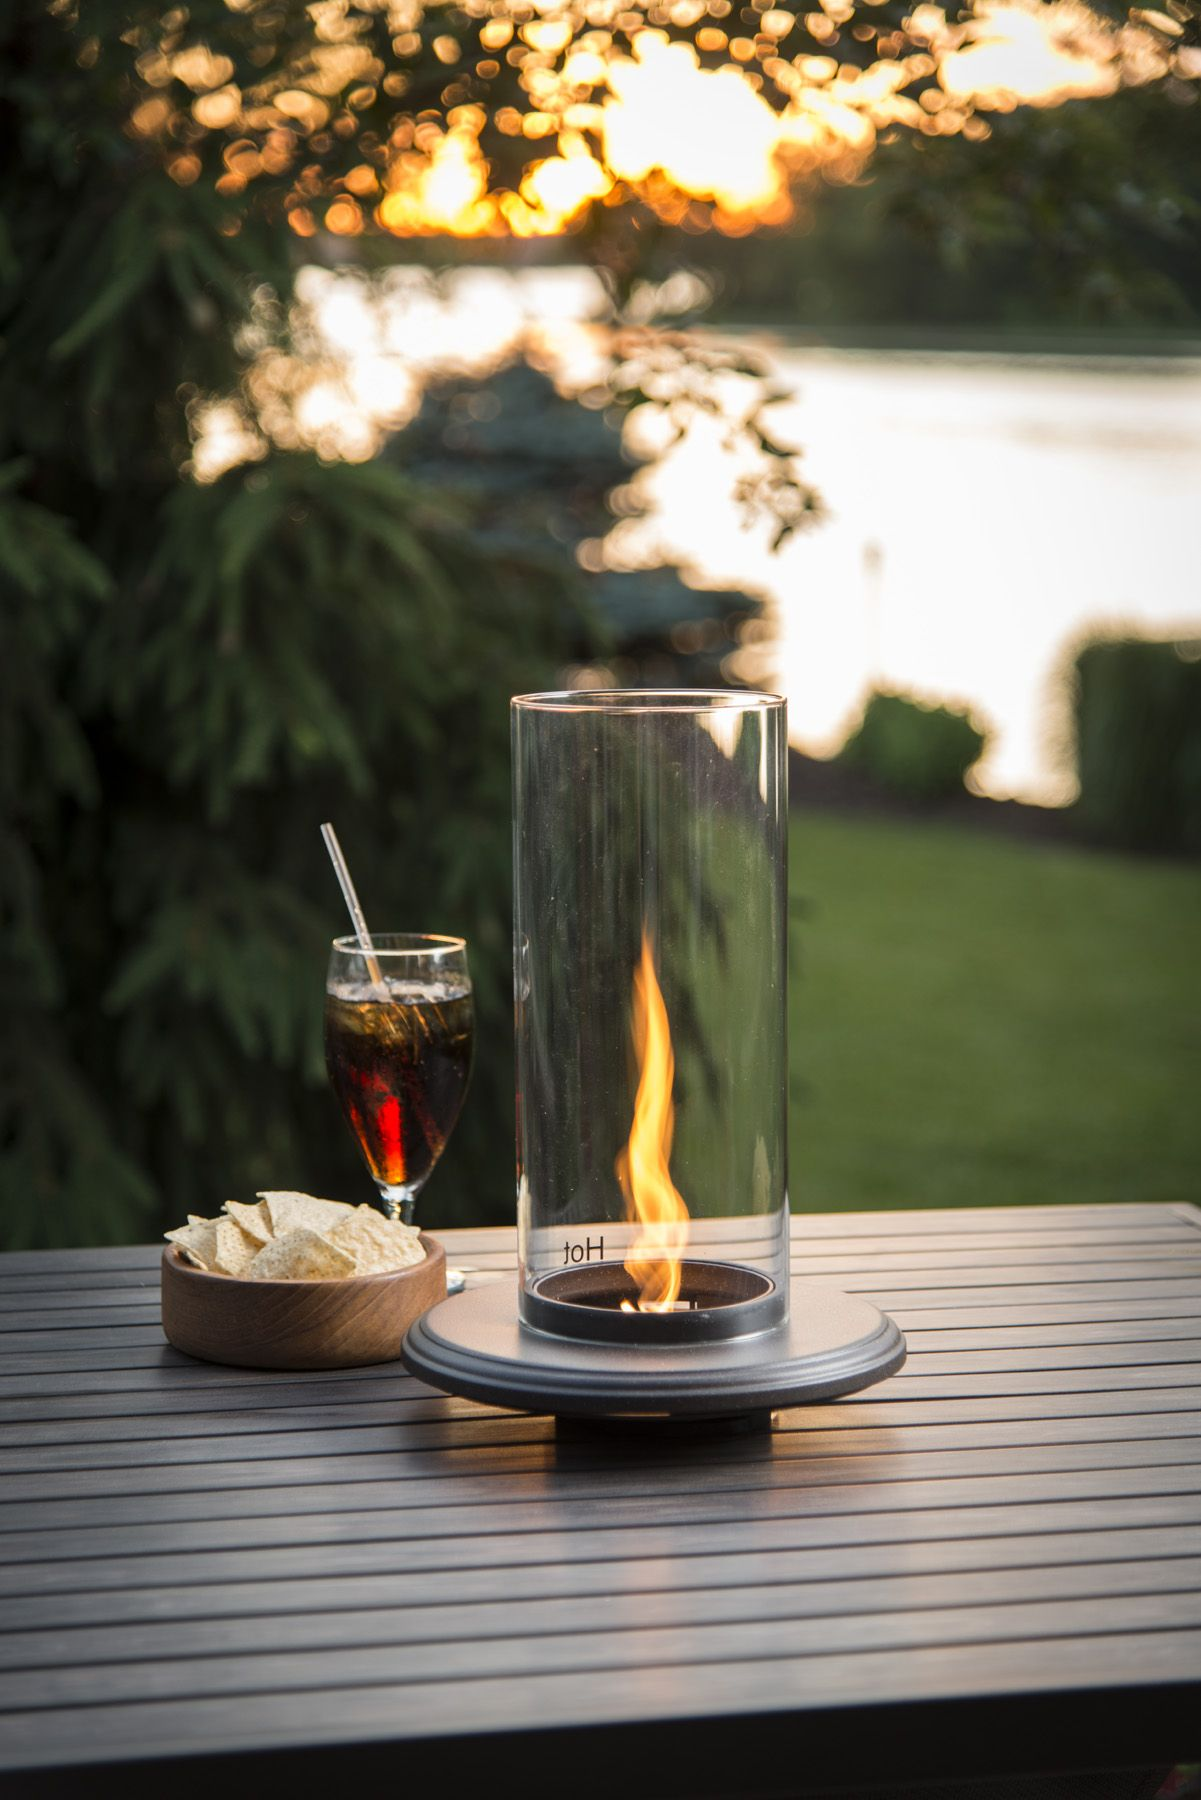 the unique table top venturi flame fire pit brings ambiance and